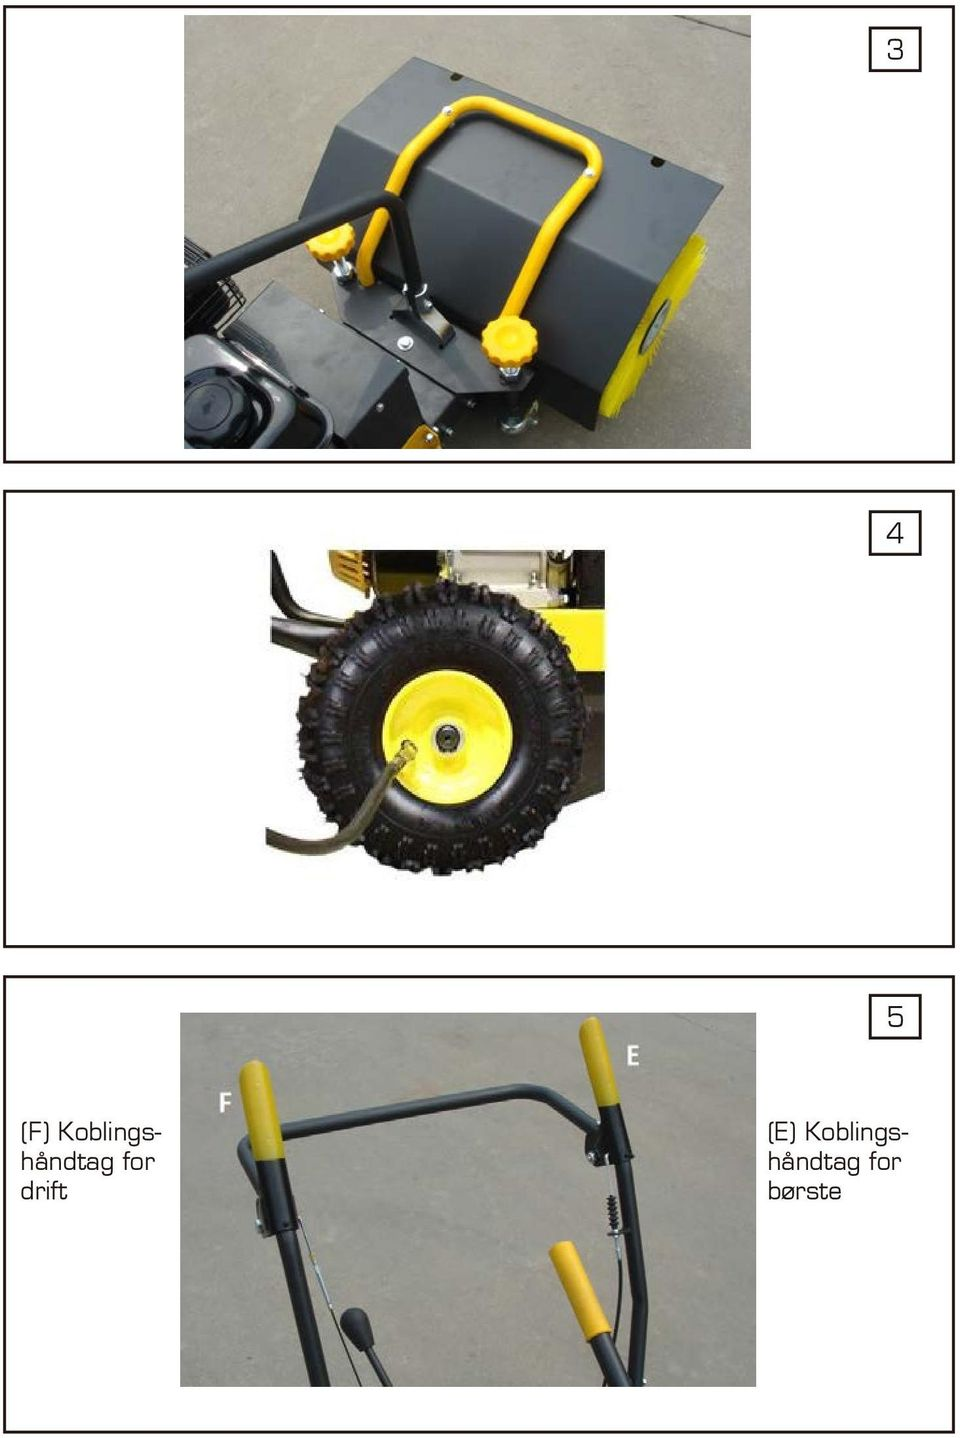 for drift (E) 5